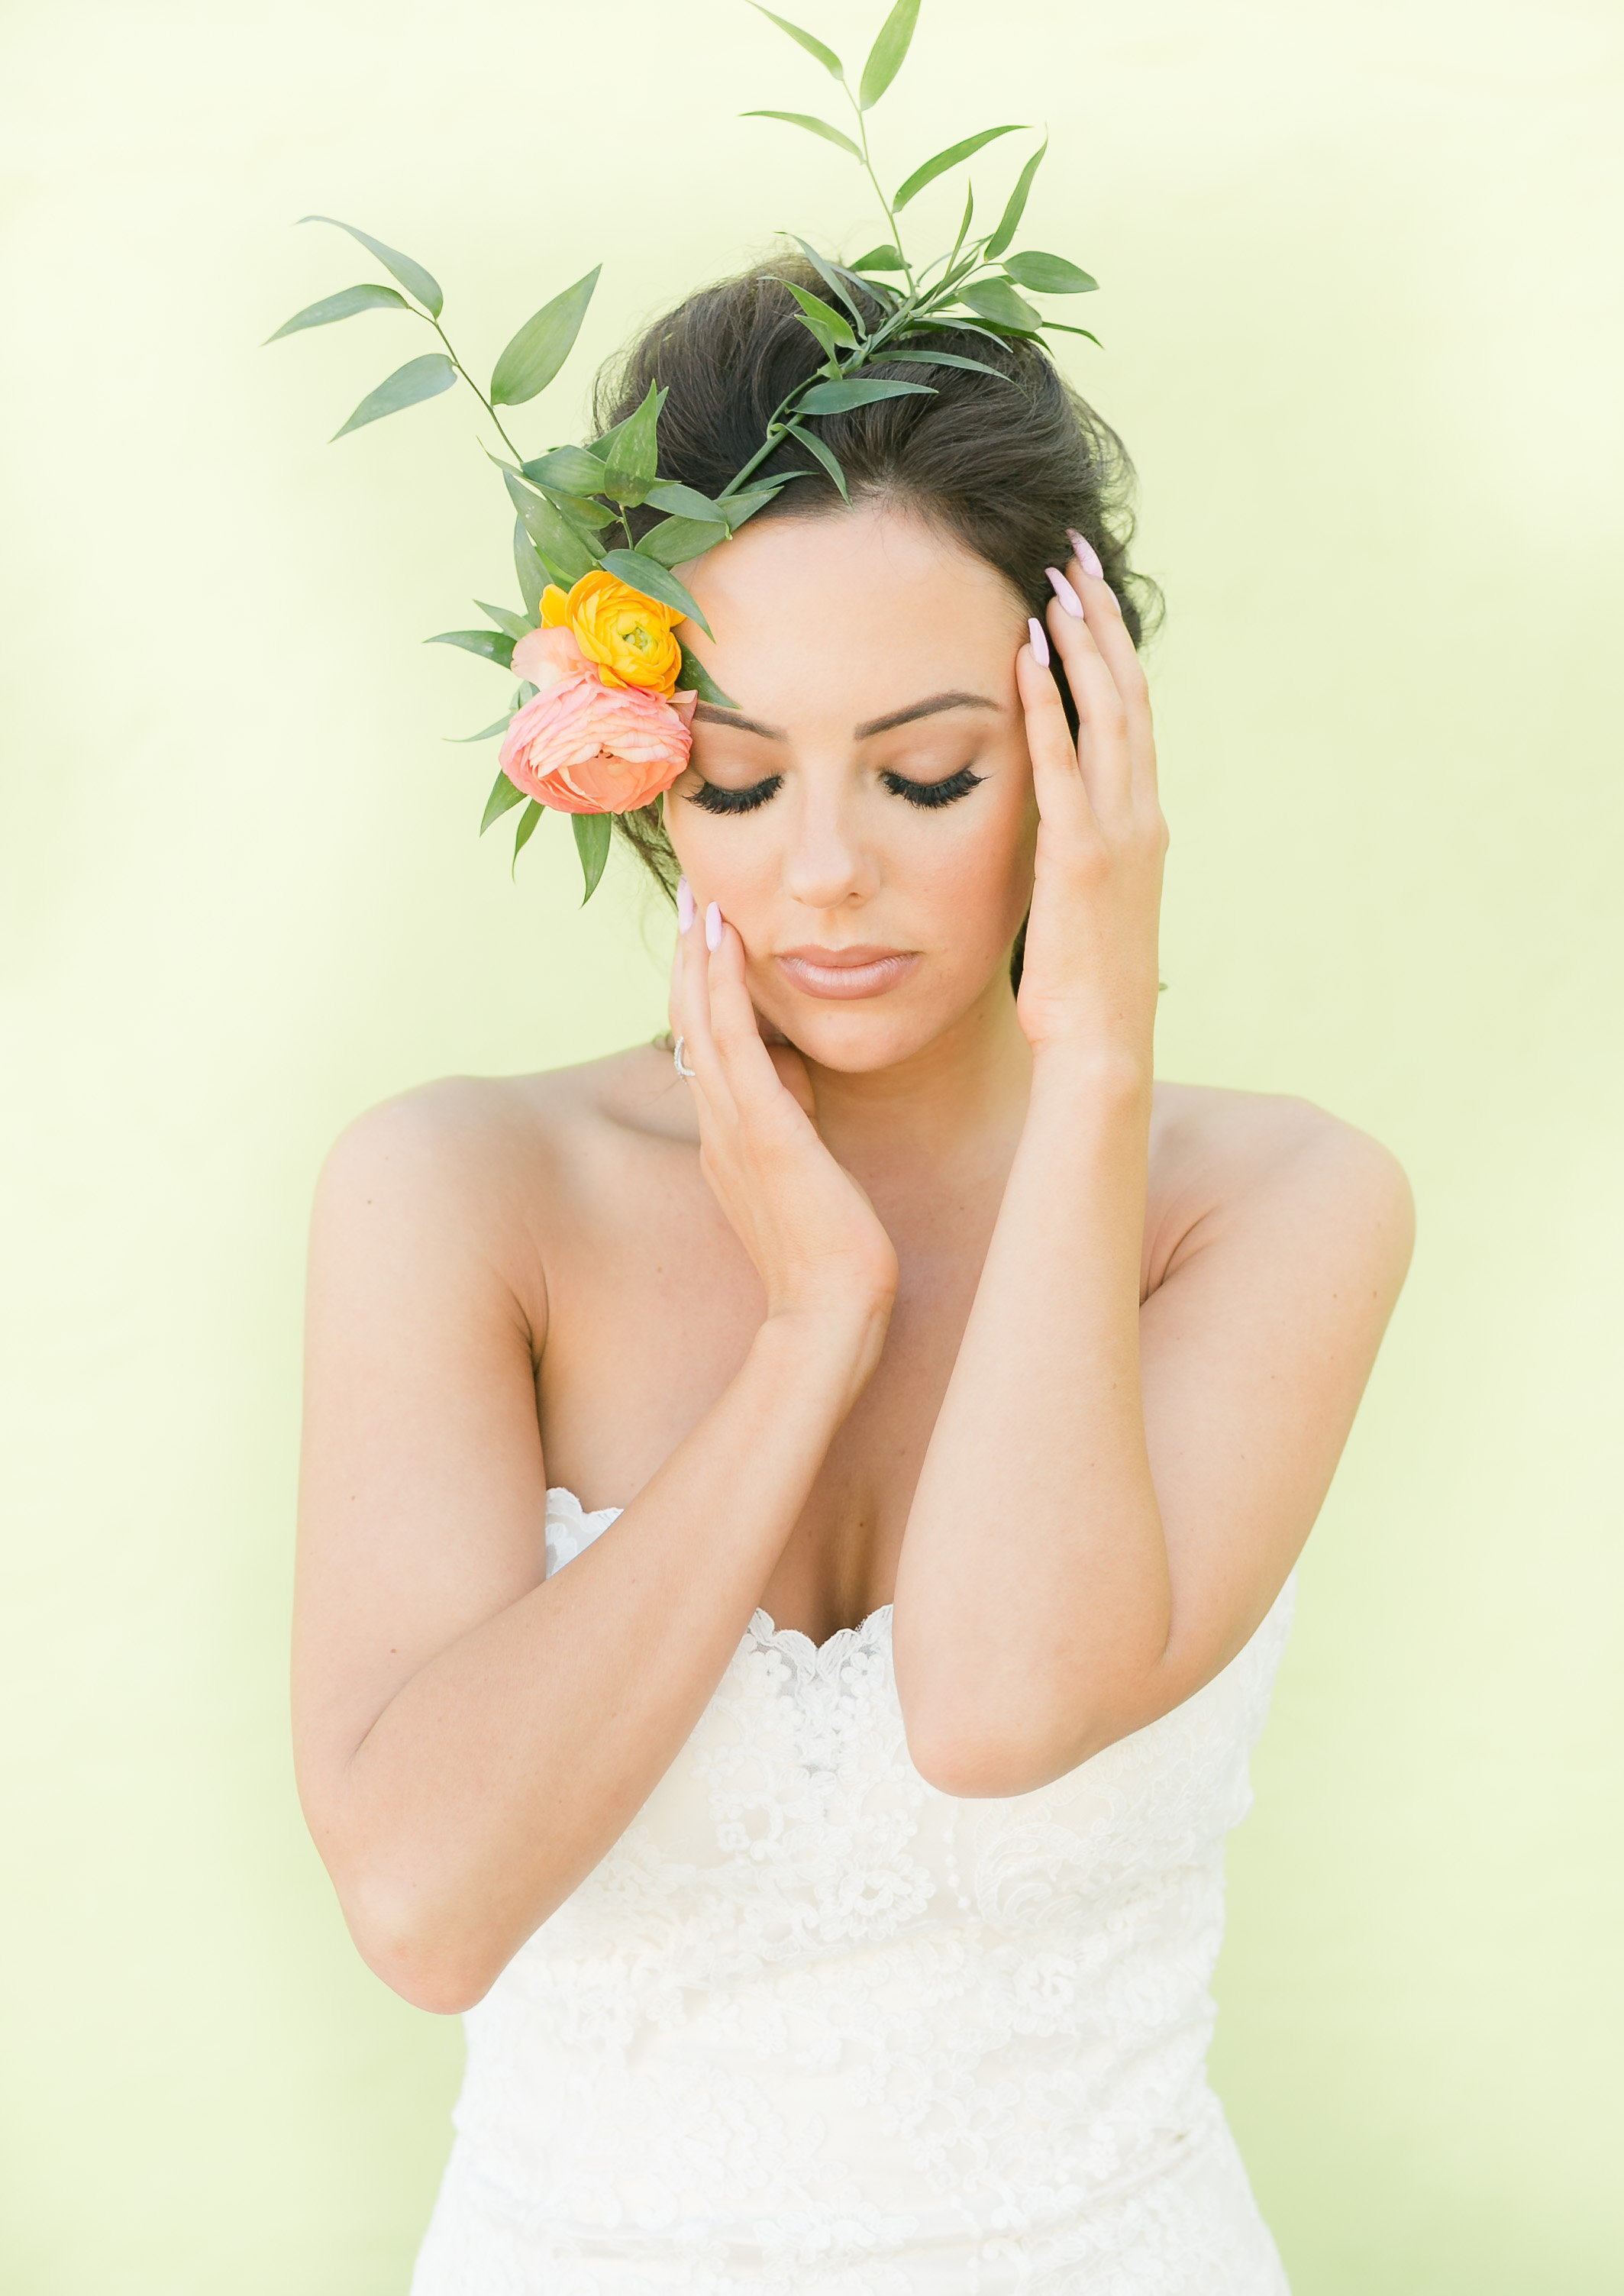 Bridal Flower Crowns - Industrial Wedding Decor Ideas